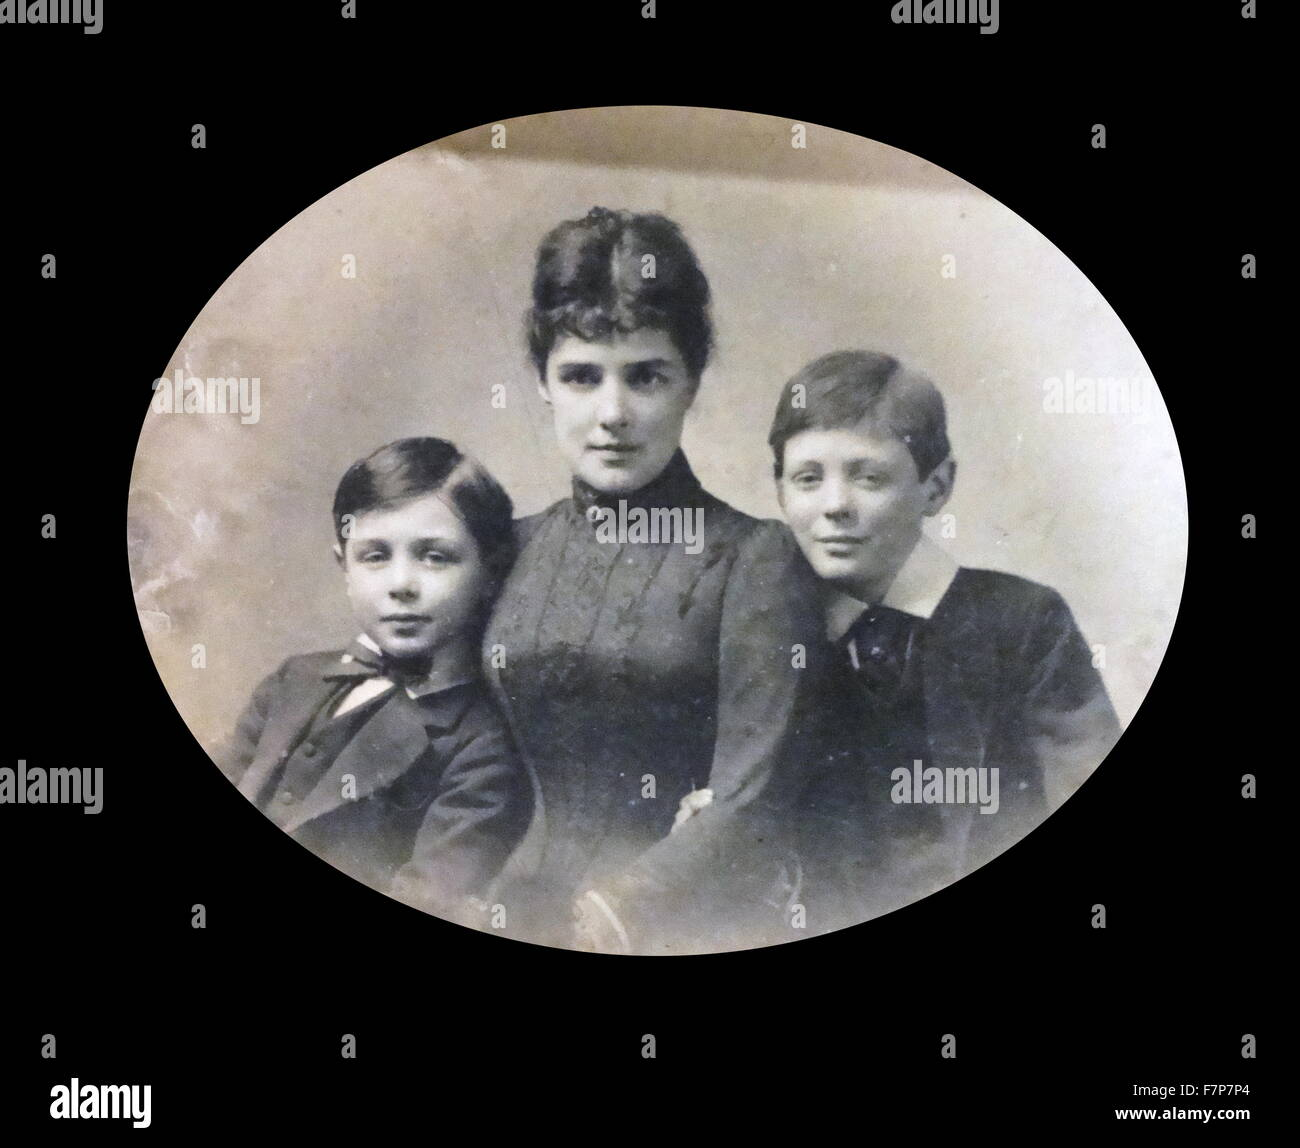 Winston Churchill (right) with his mother and brother in 1916. - Stock Image